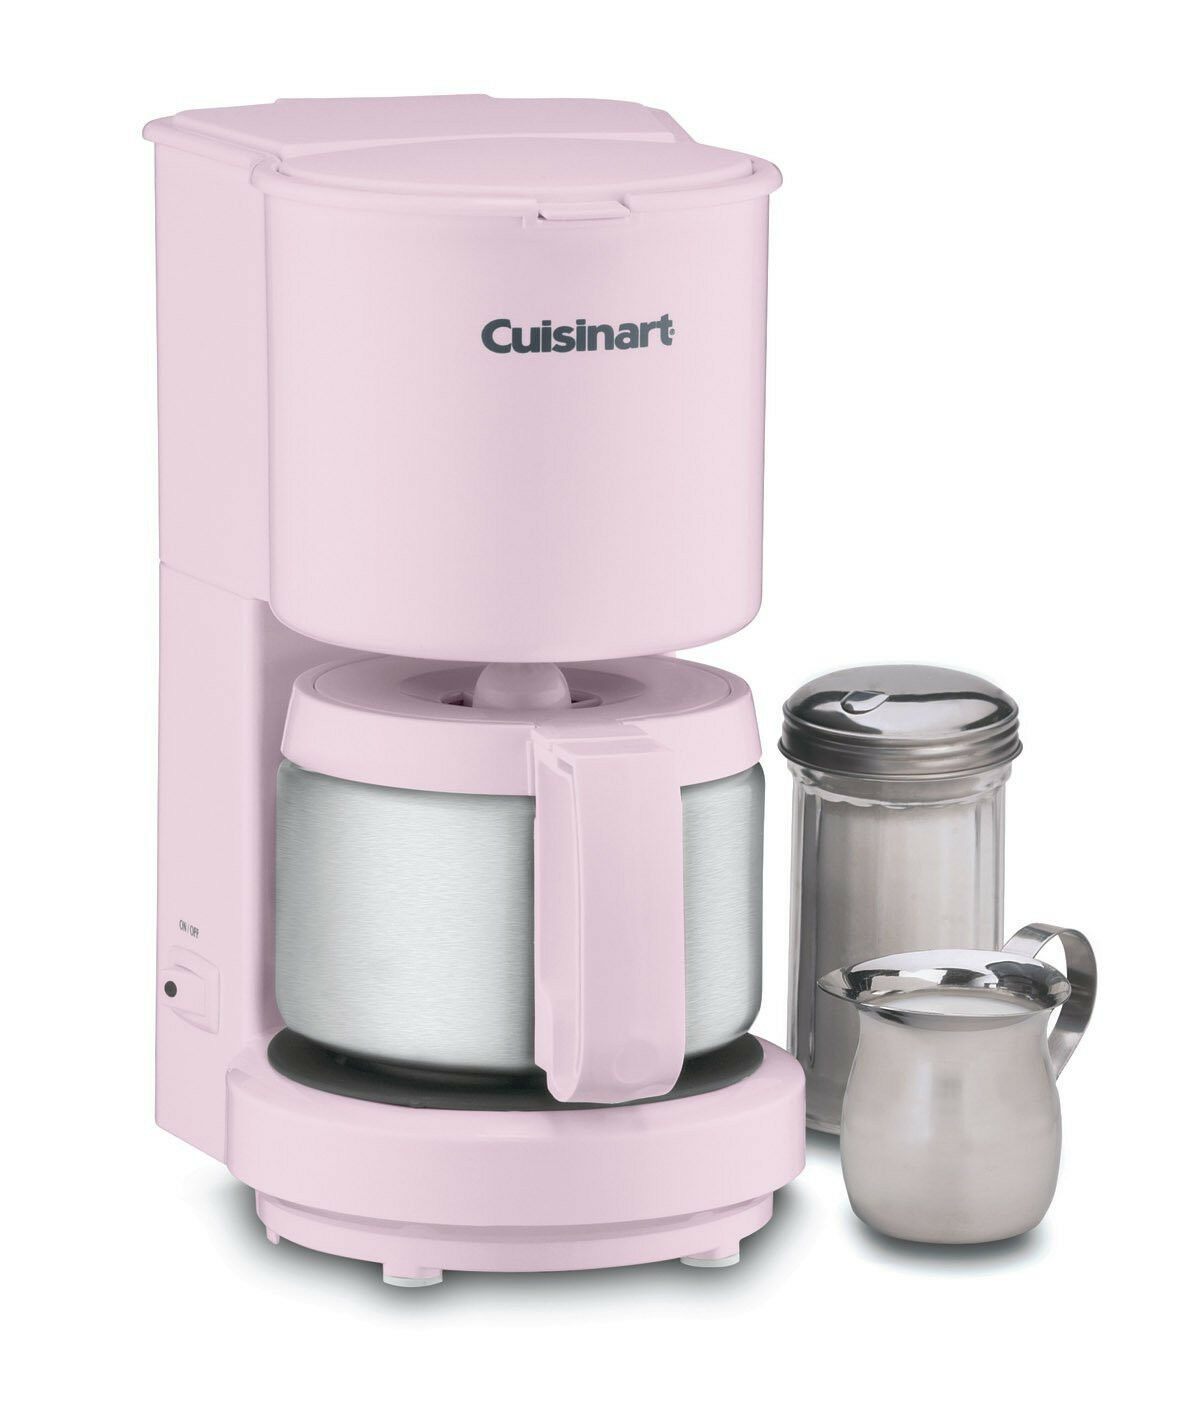 Cuisinart DCC-450pk 4-Cup Coffee maker Stainless-Steel Carafe (Refurbished) at Sears.com